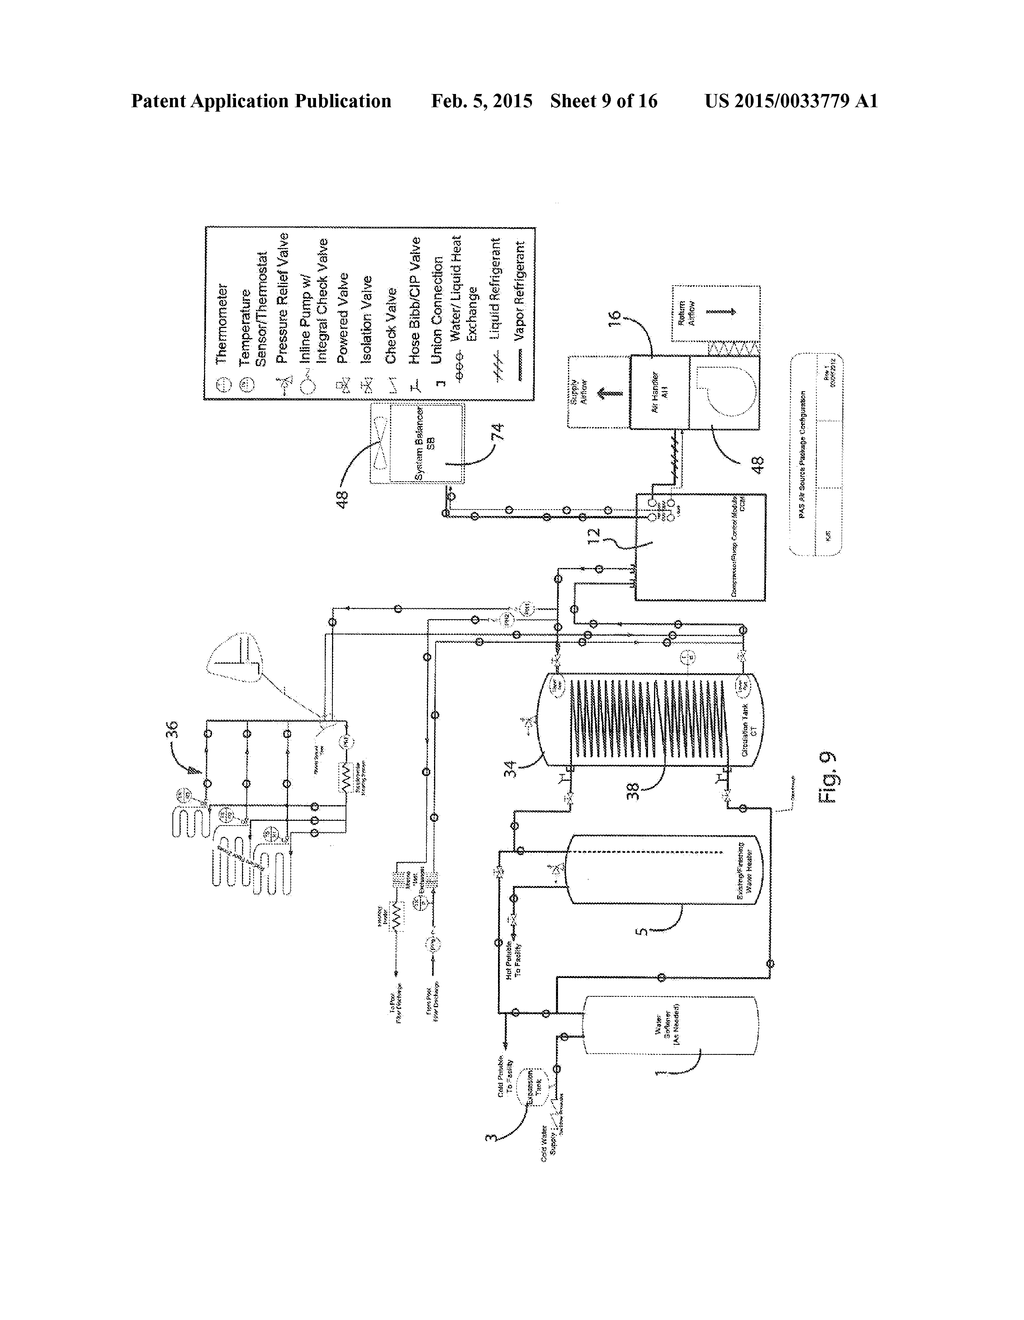 Heat Pump Refrigerant Circuit Diagram Detailed Schematic Diagrams Piping Refrigeration Multi Split For Heating Cooling And Water Geothermal